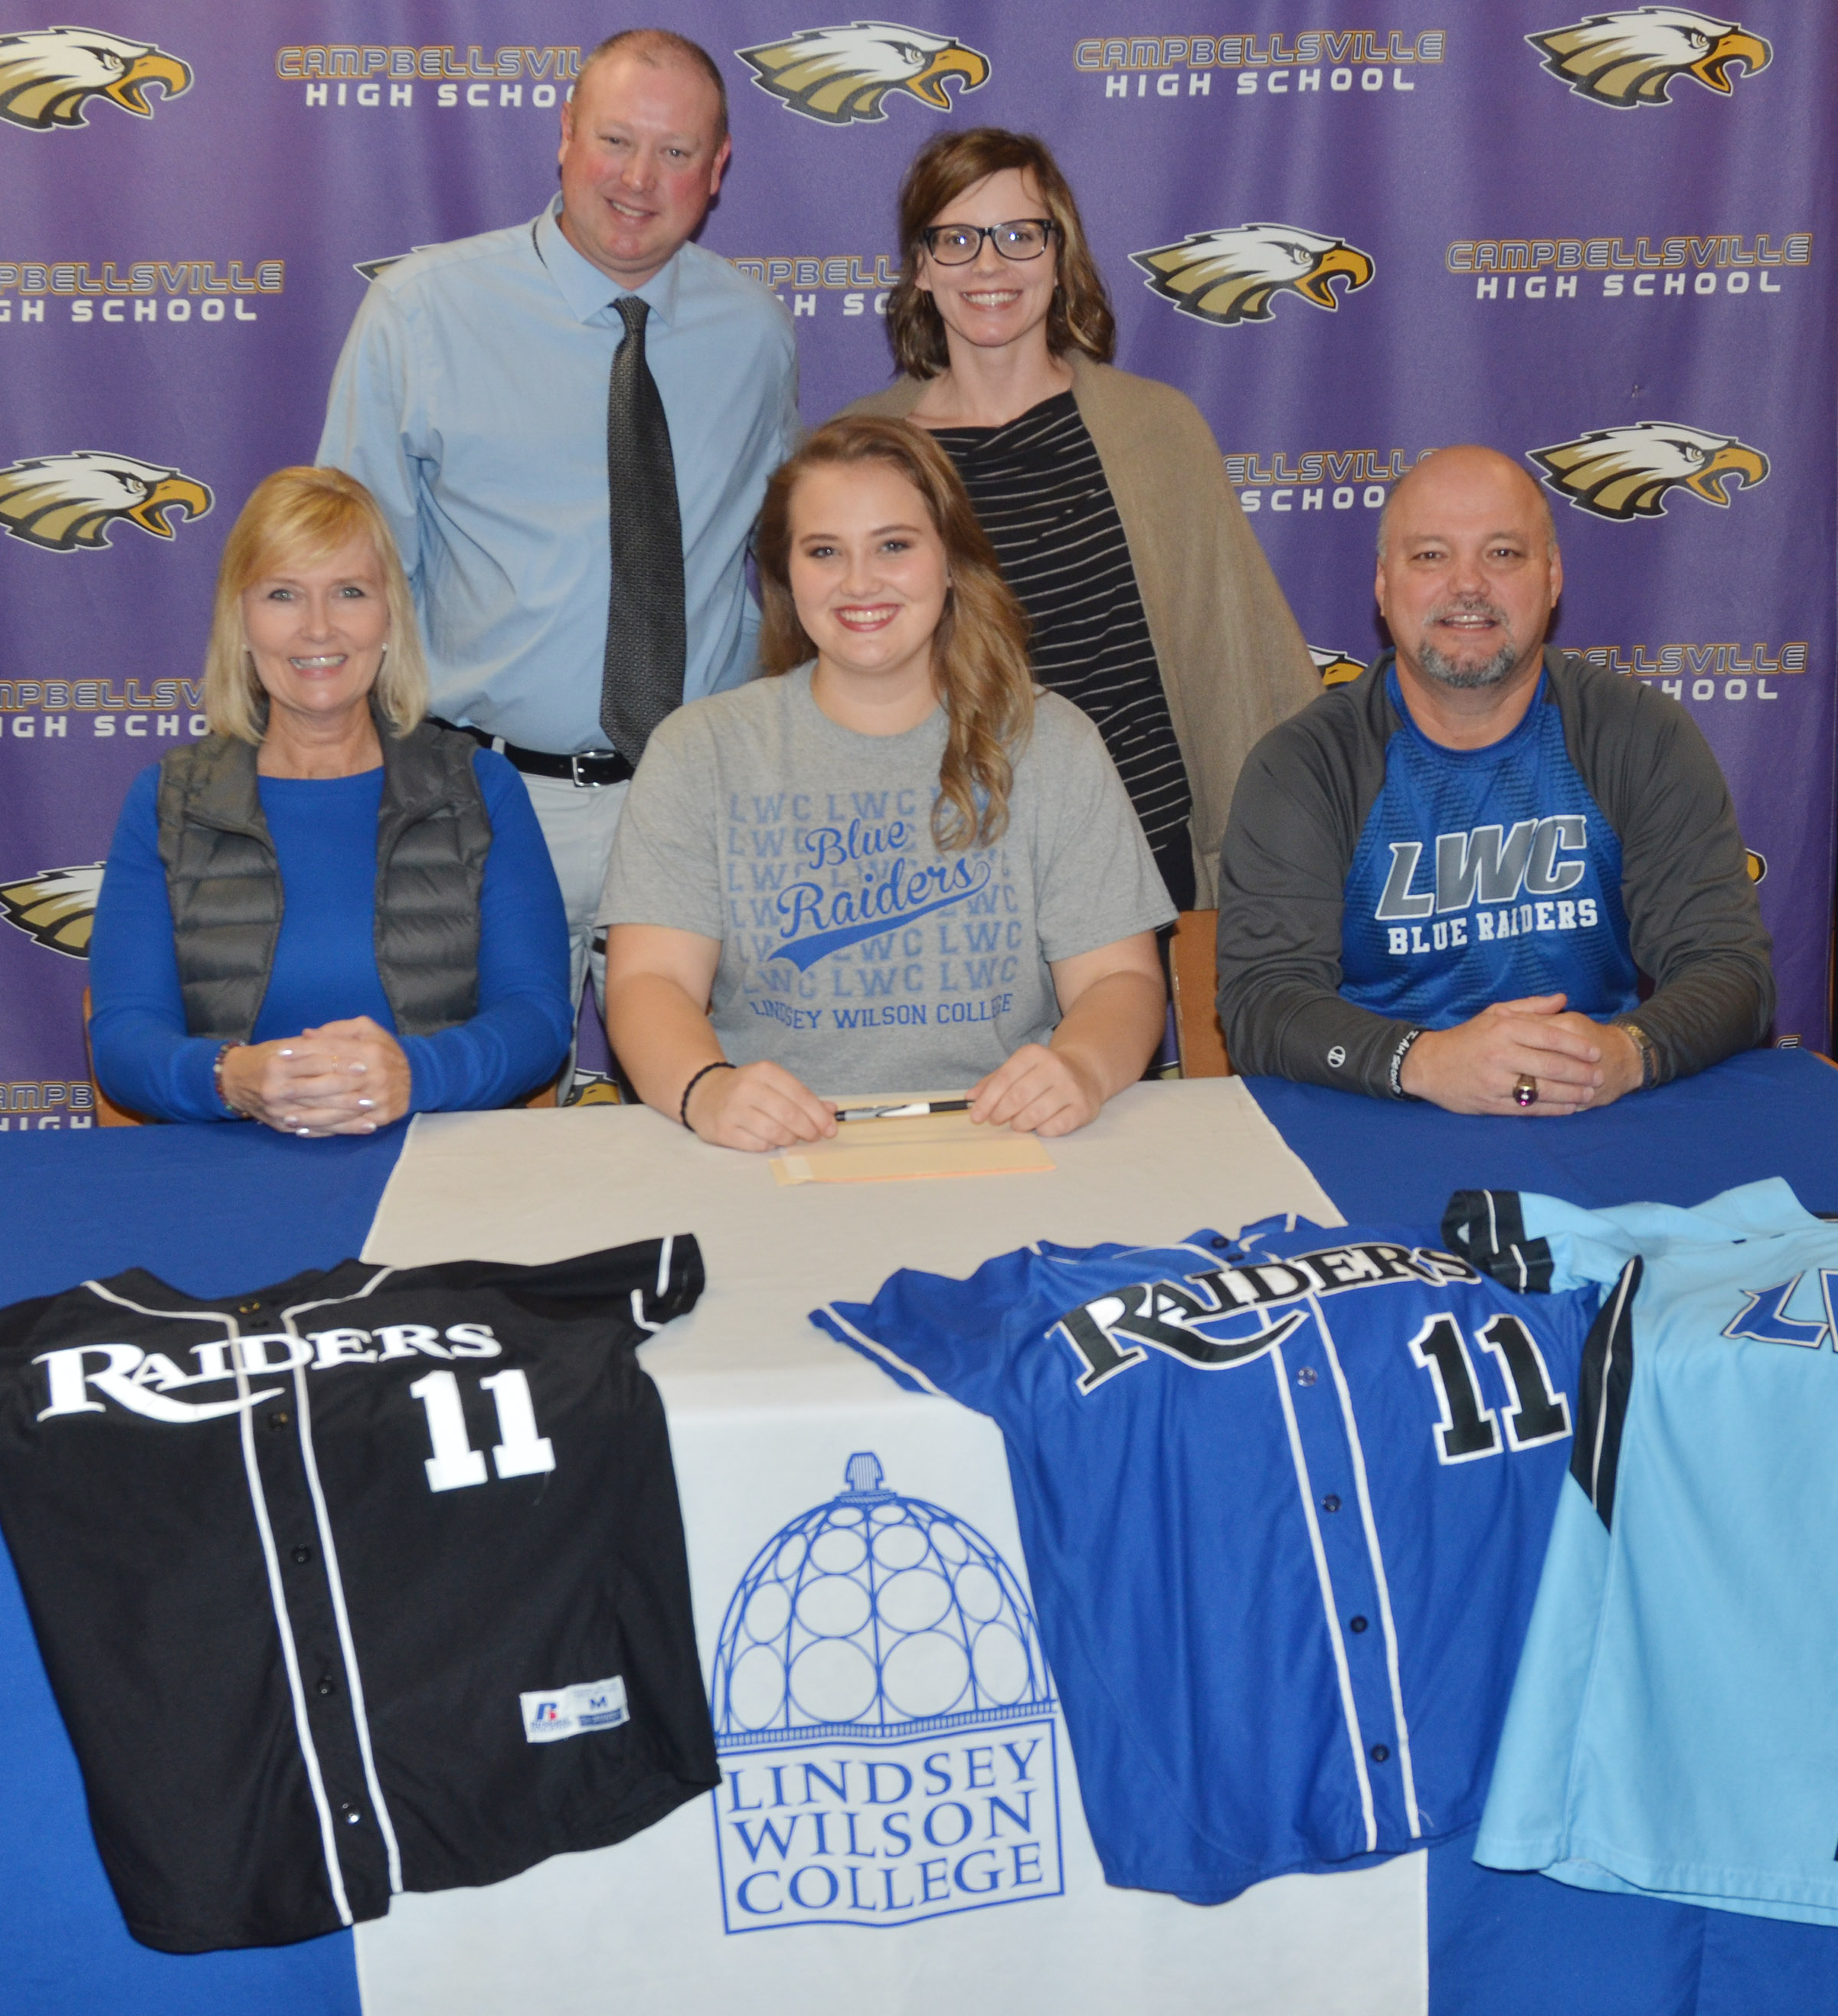 CHS senior Brenna Wethington has signed to continue her softball career at Lindsey Wilson College. She is pictured with her parents, Sheila and John Wethington. Back, LWC head softball coach David Dews and LWC Director of Admissions Charity Ferguson.